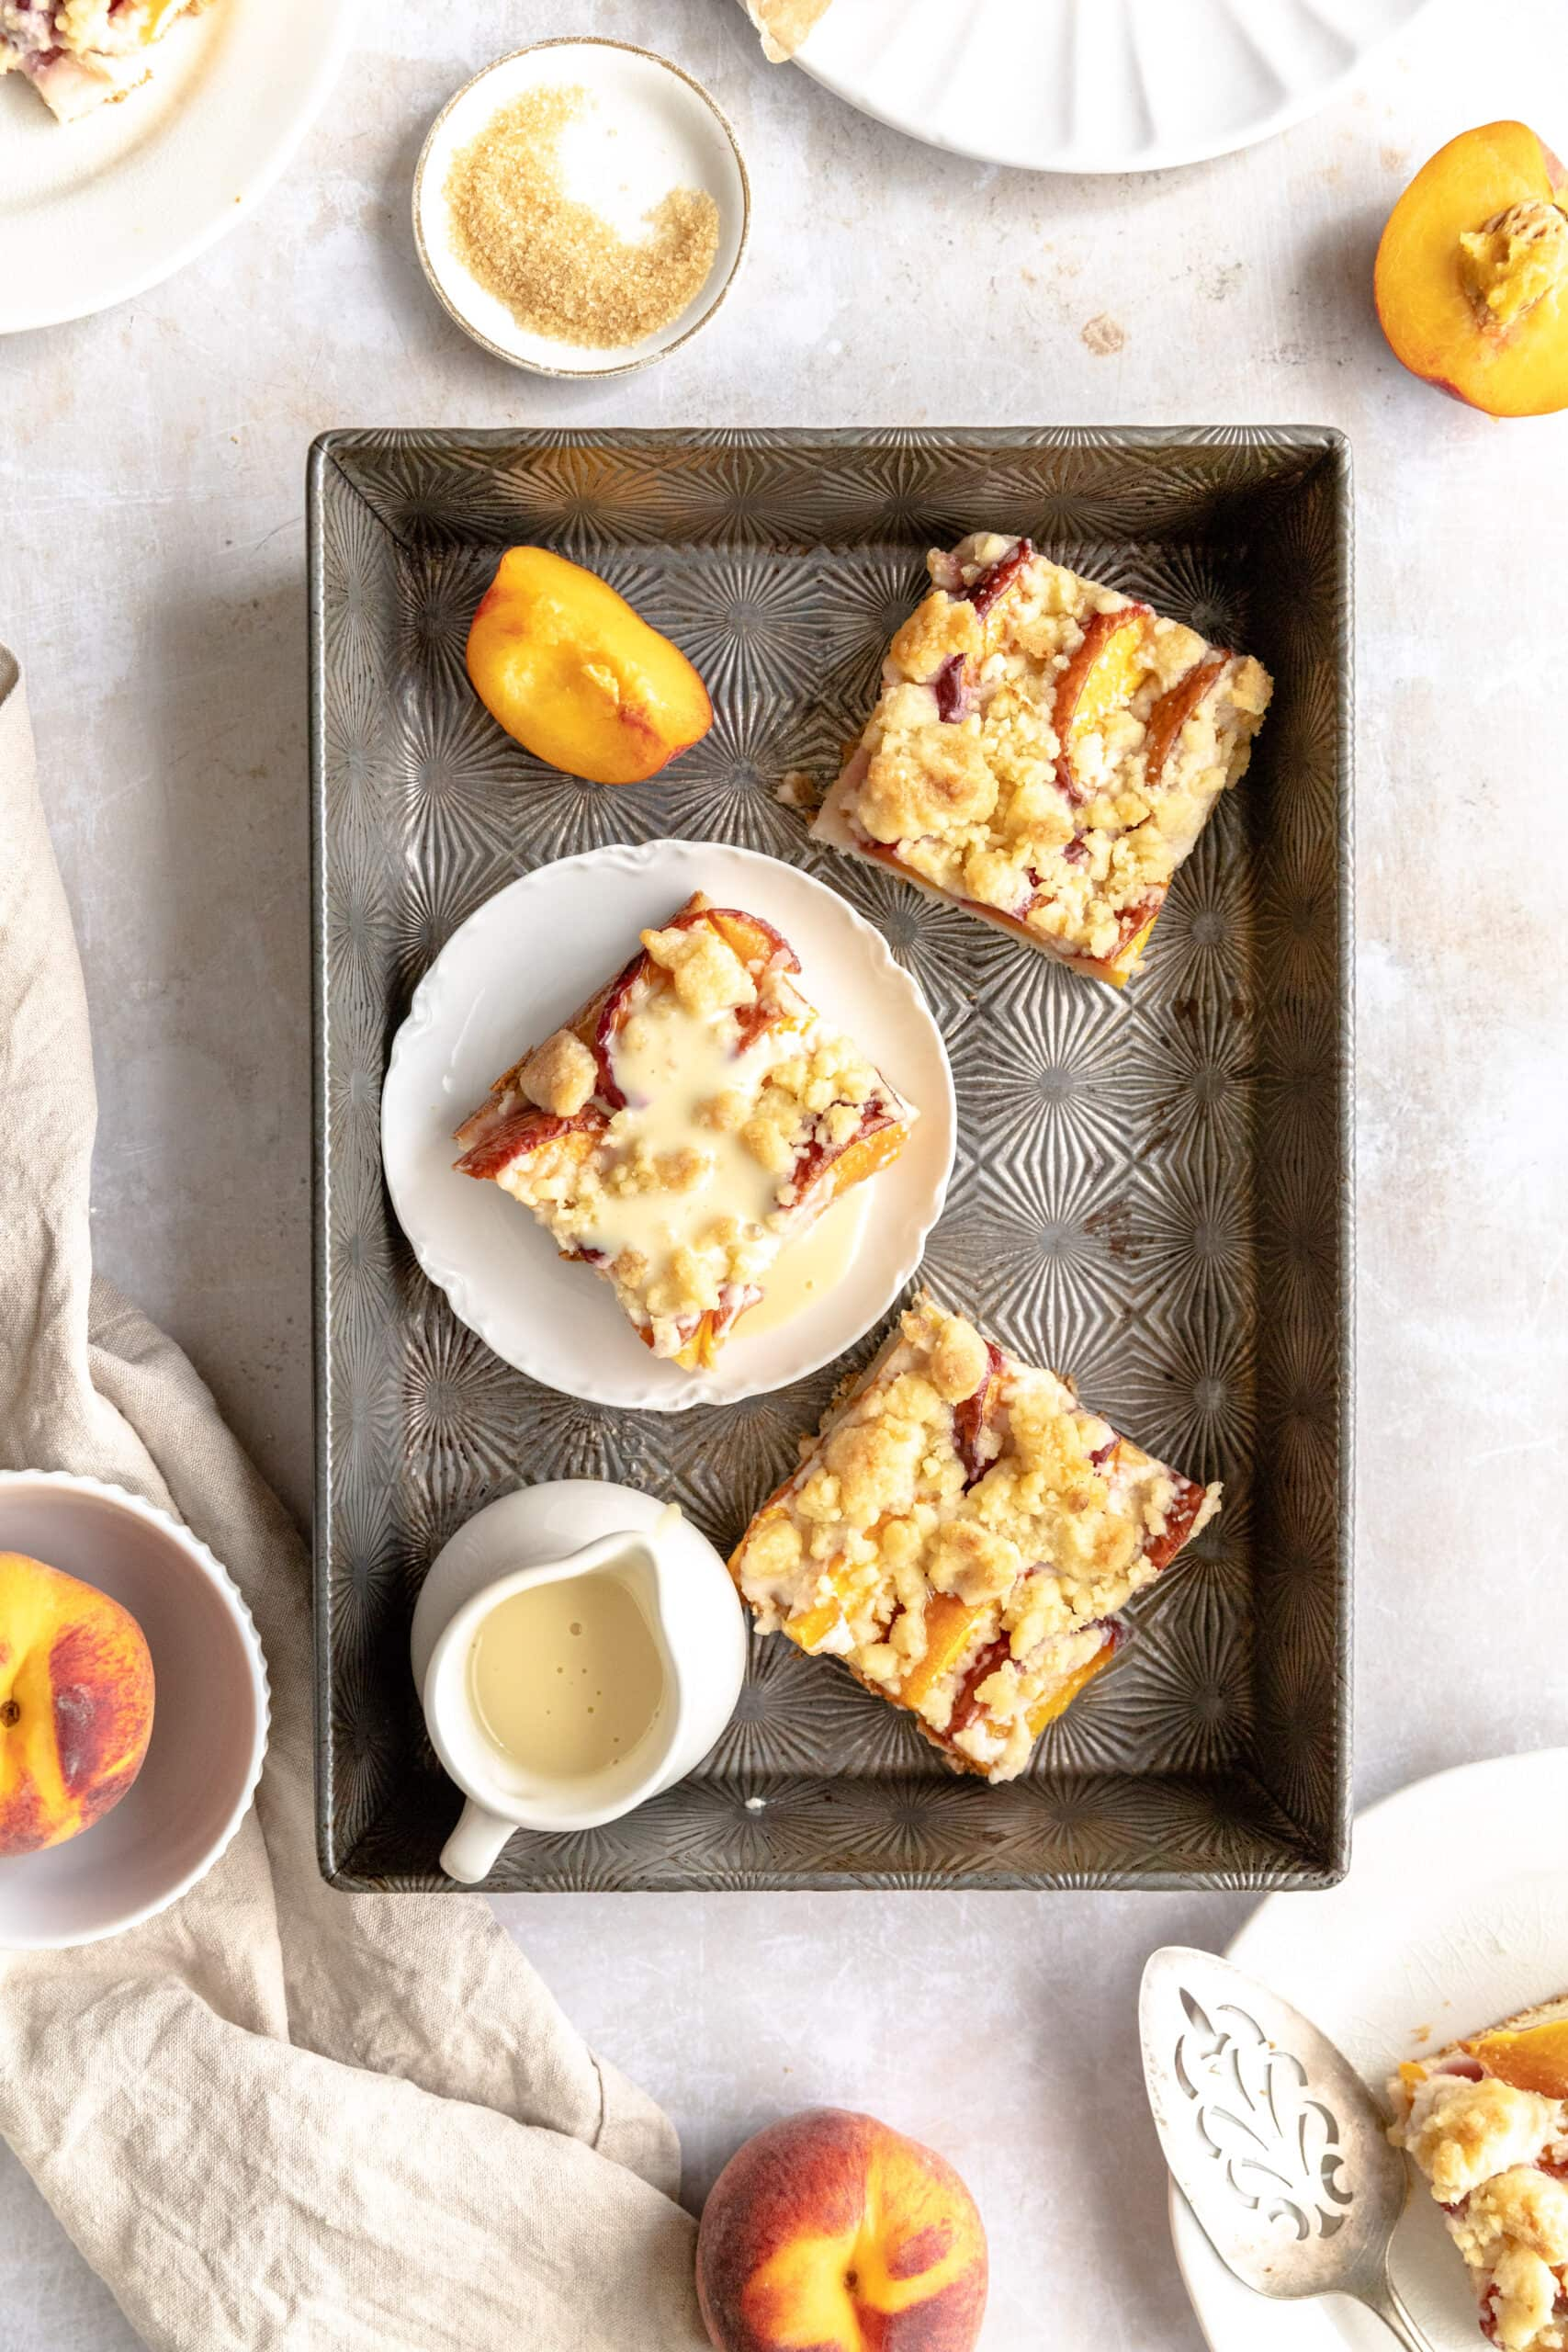 Pfirsichkuchen mit streusel cut into squares in a 9x13 baking pan with vanille soße and extra peaches.